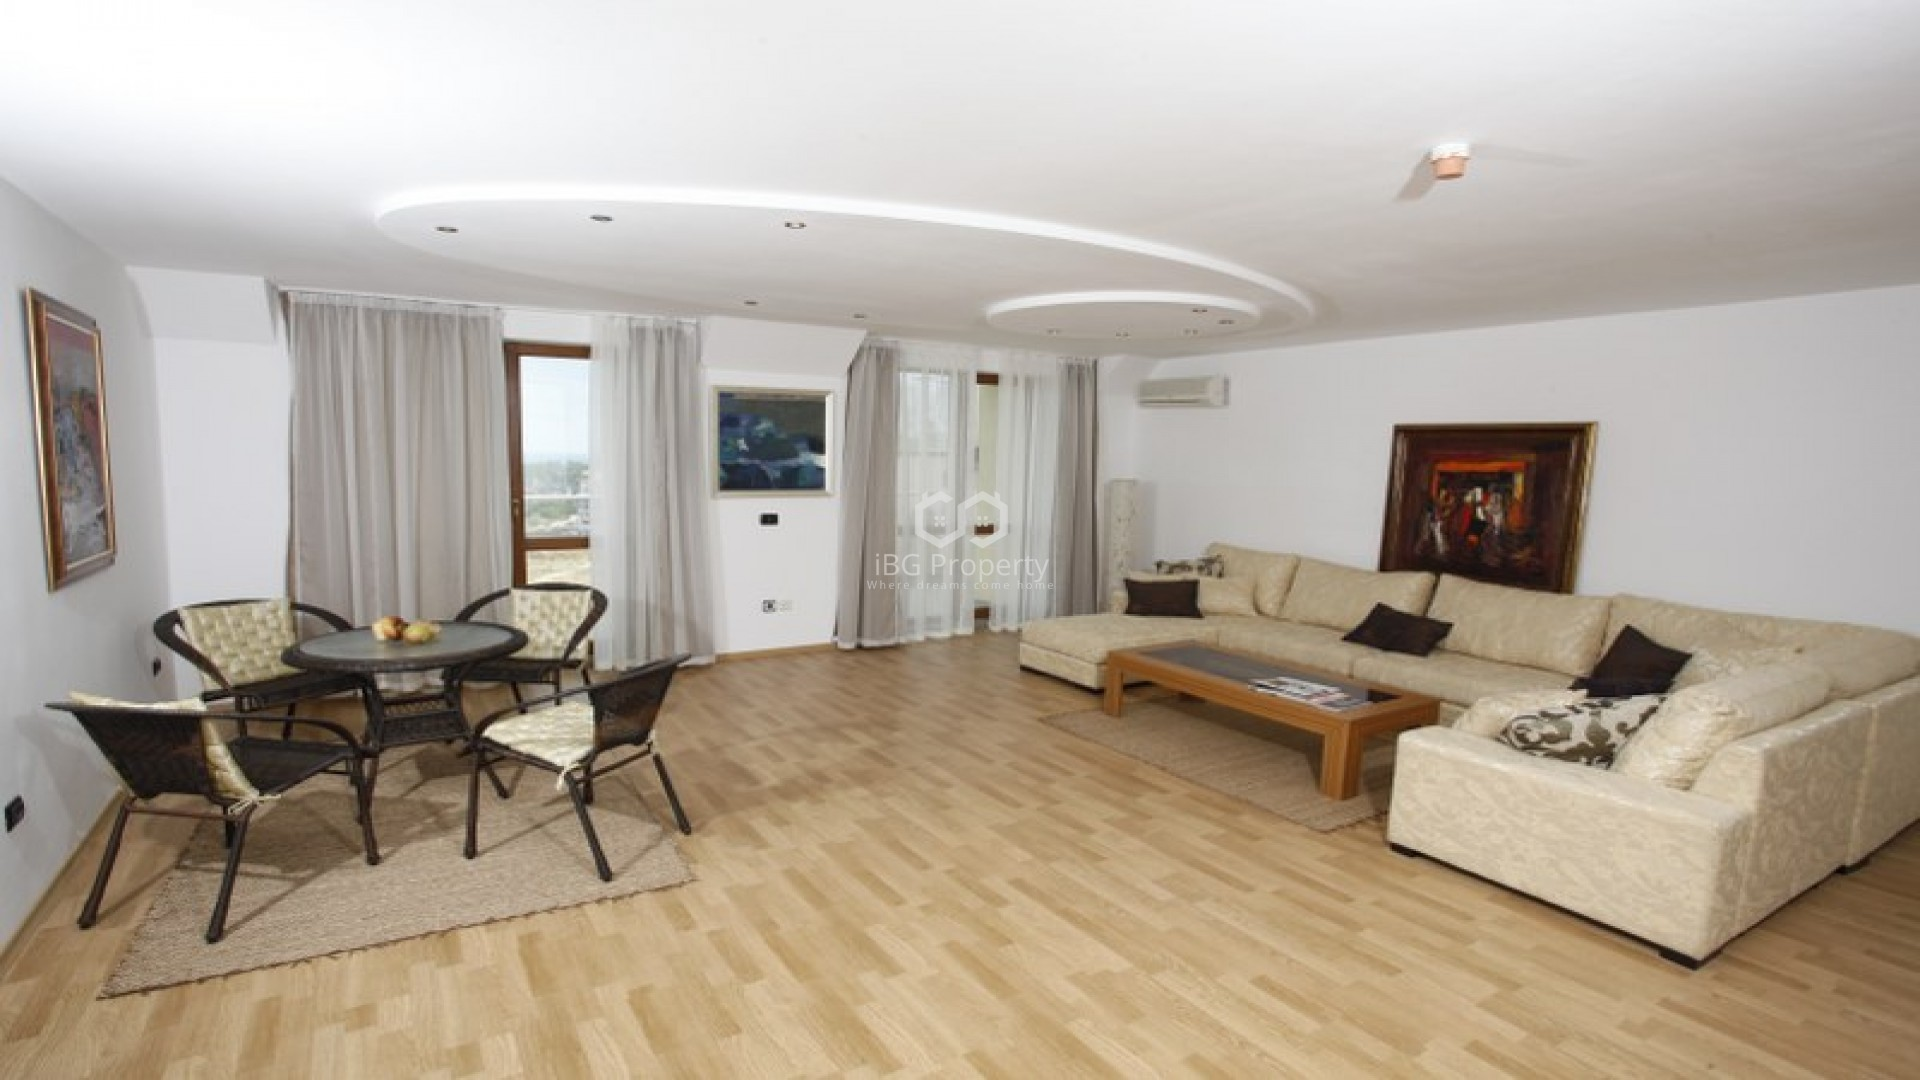 EXCLUSIVE OFFER! One bedroom apartment Byala 143 m2